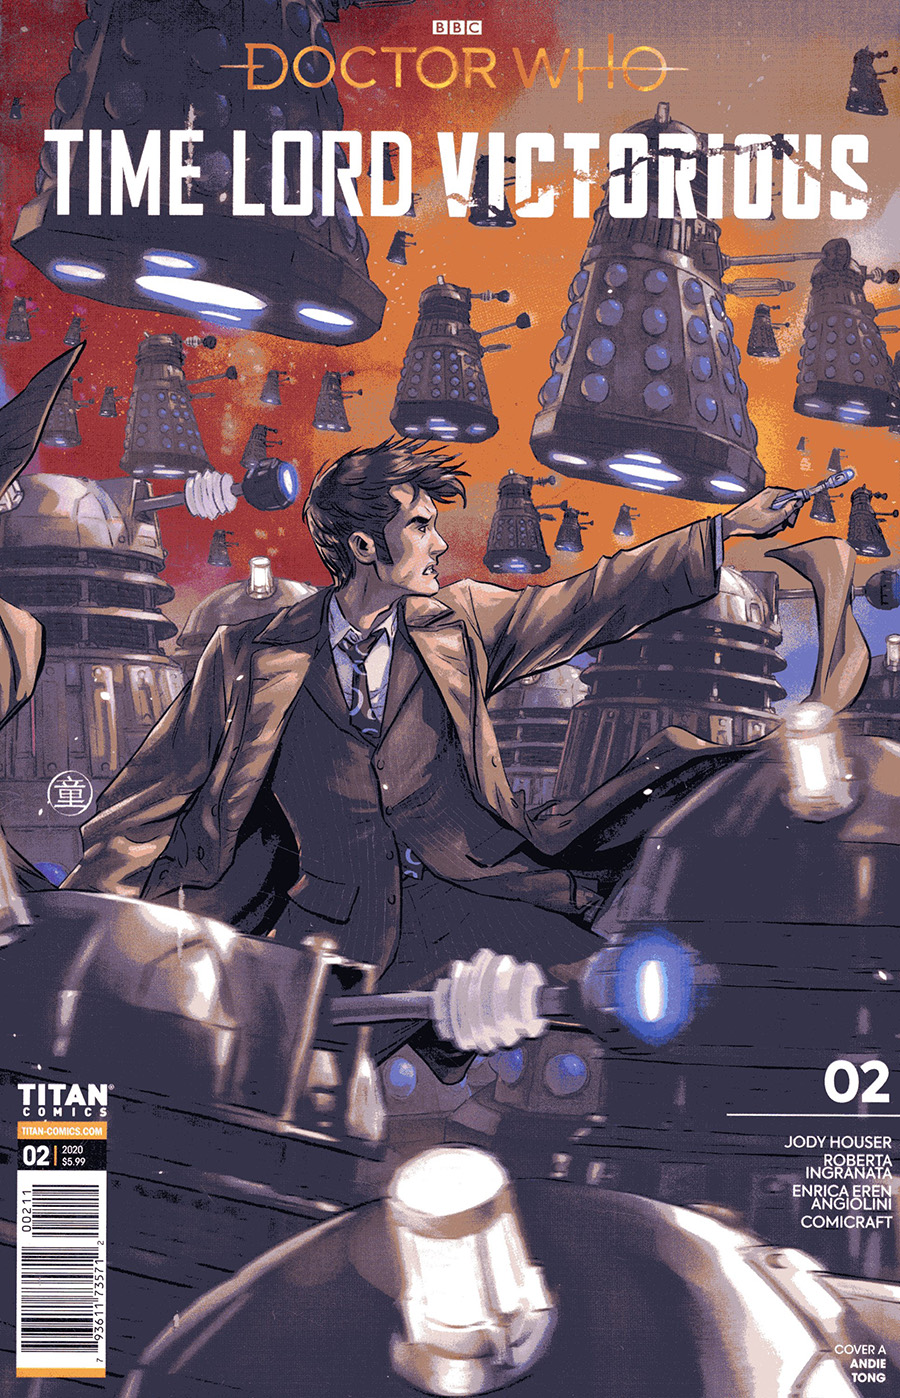 Doctor Who Time Lord Victorious #2 Cover A Regular Andie Tong Cover